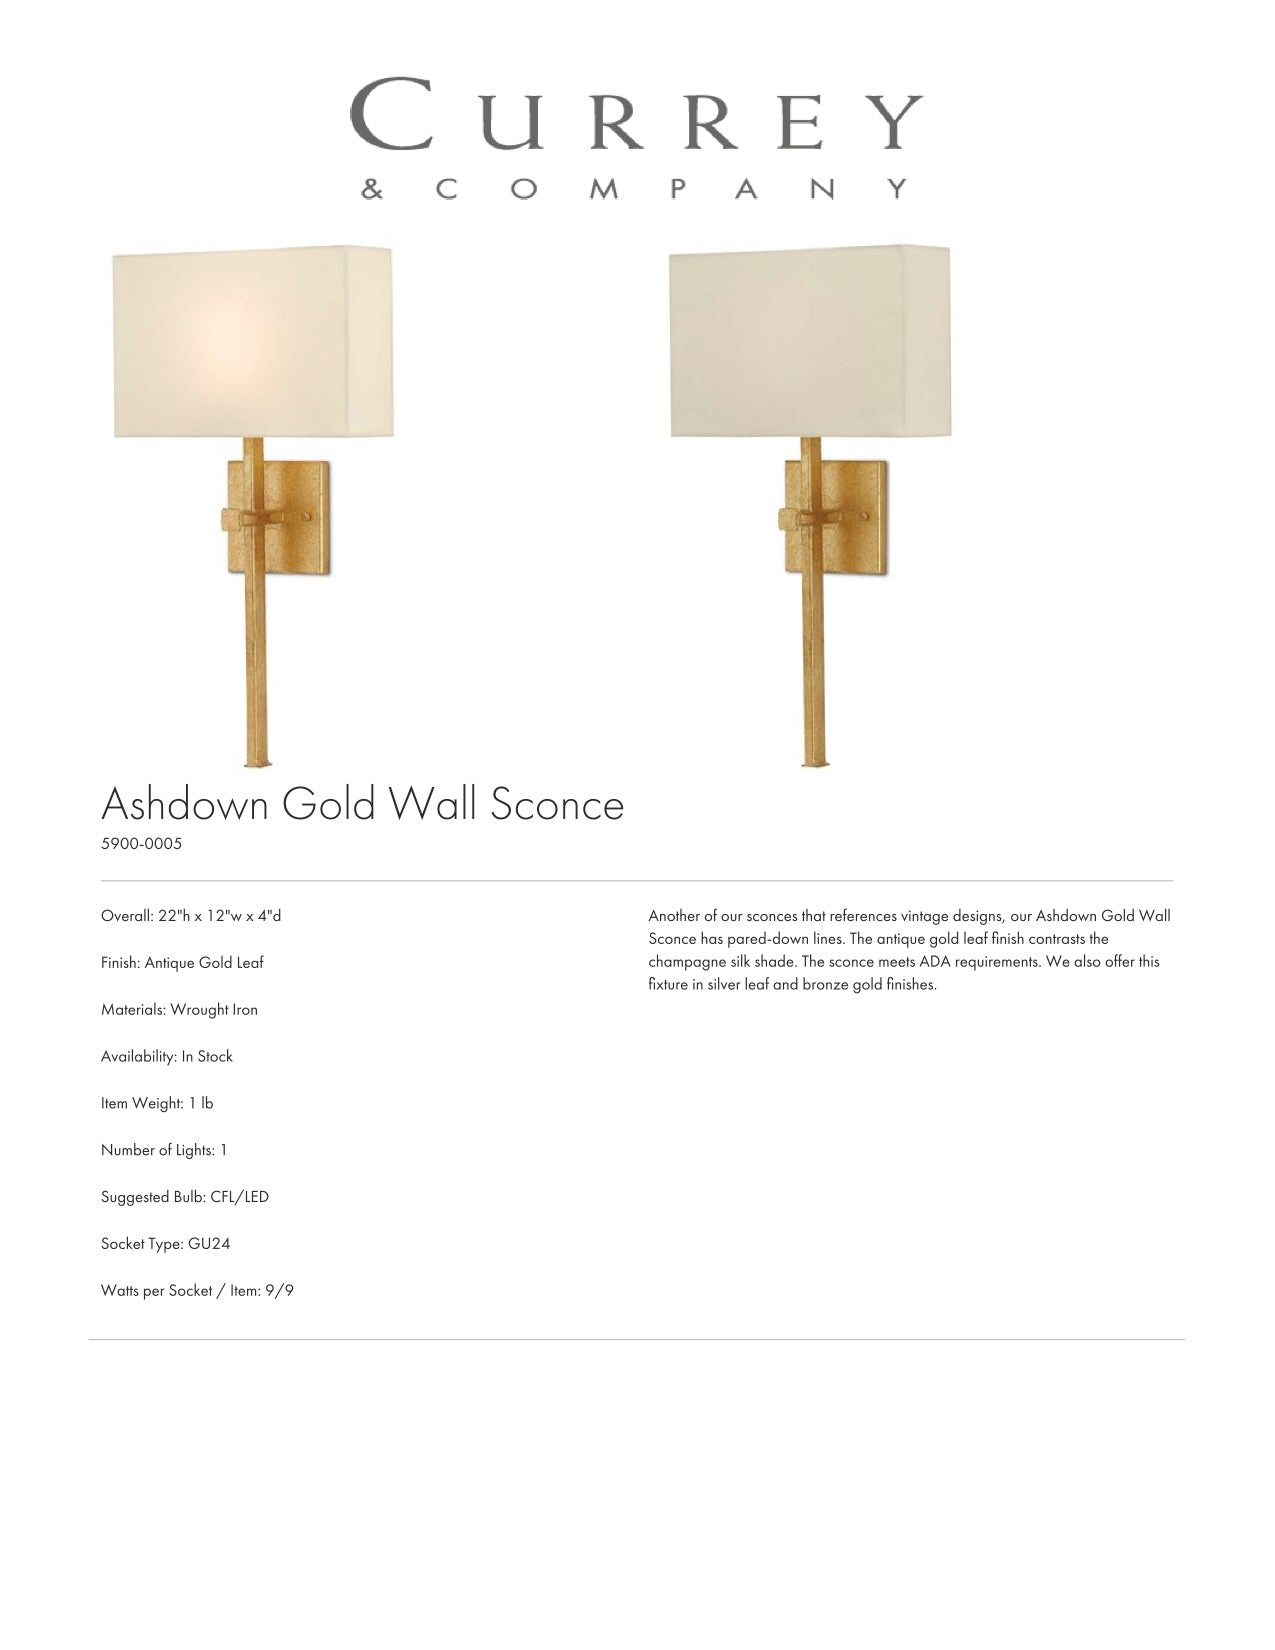 Currey & Company Ashdown Gold Wall Sconce Tearsheet